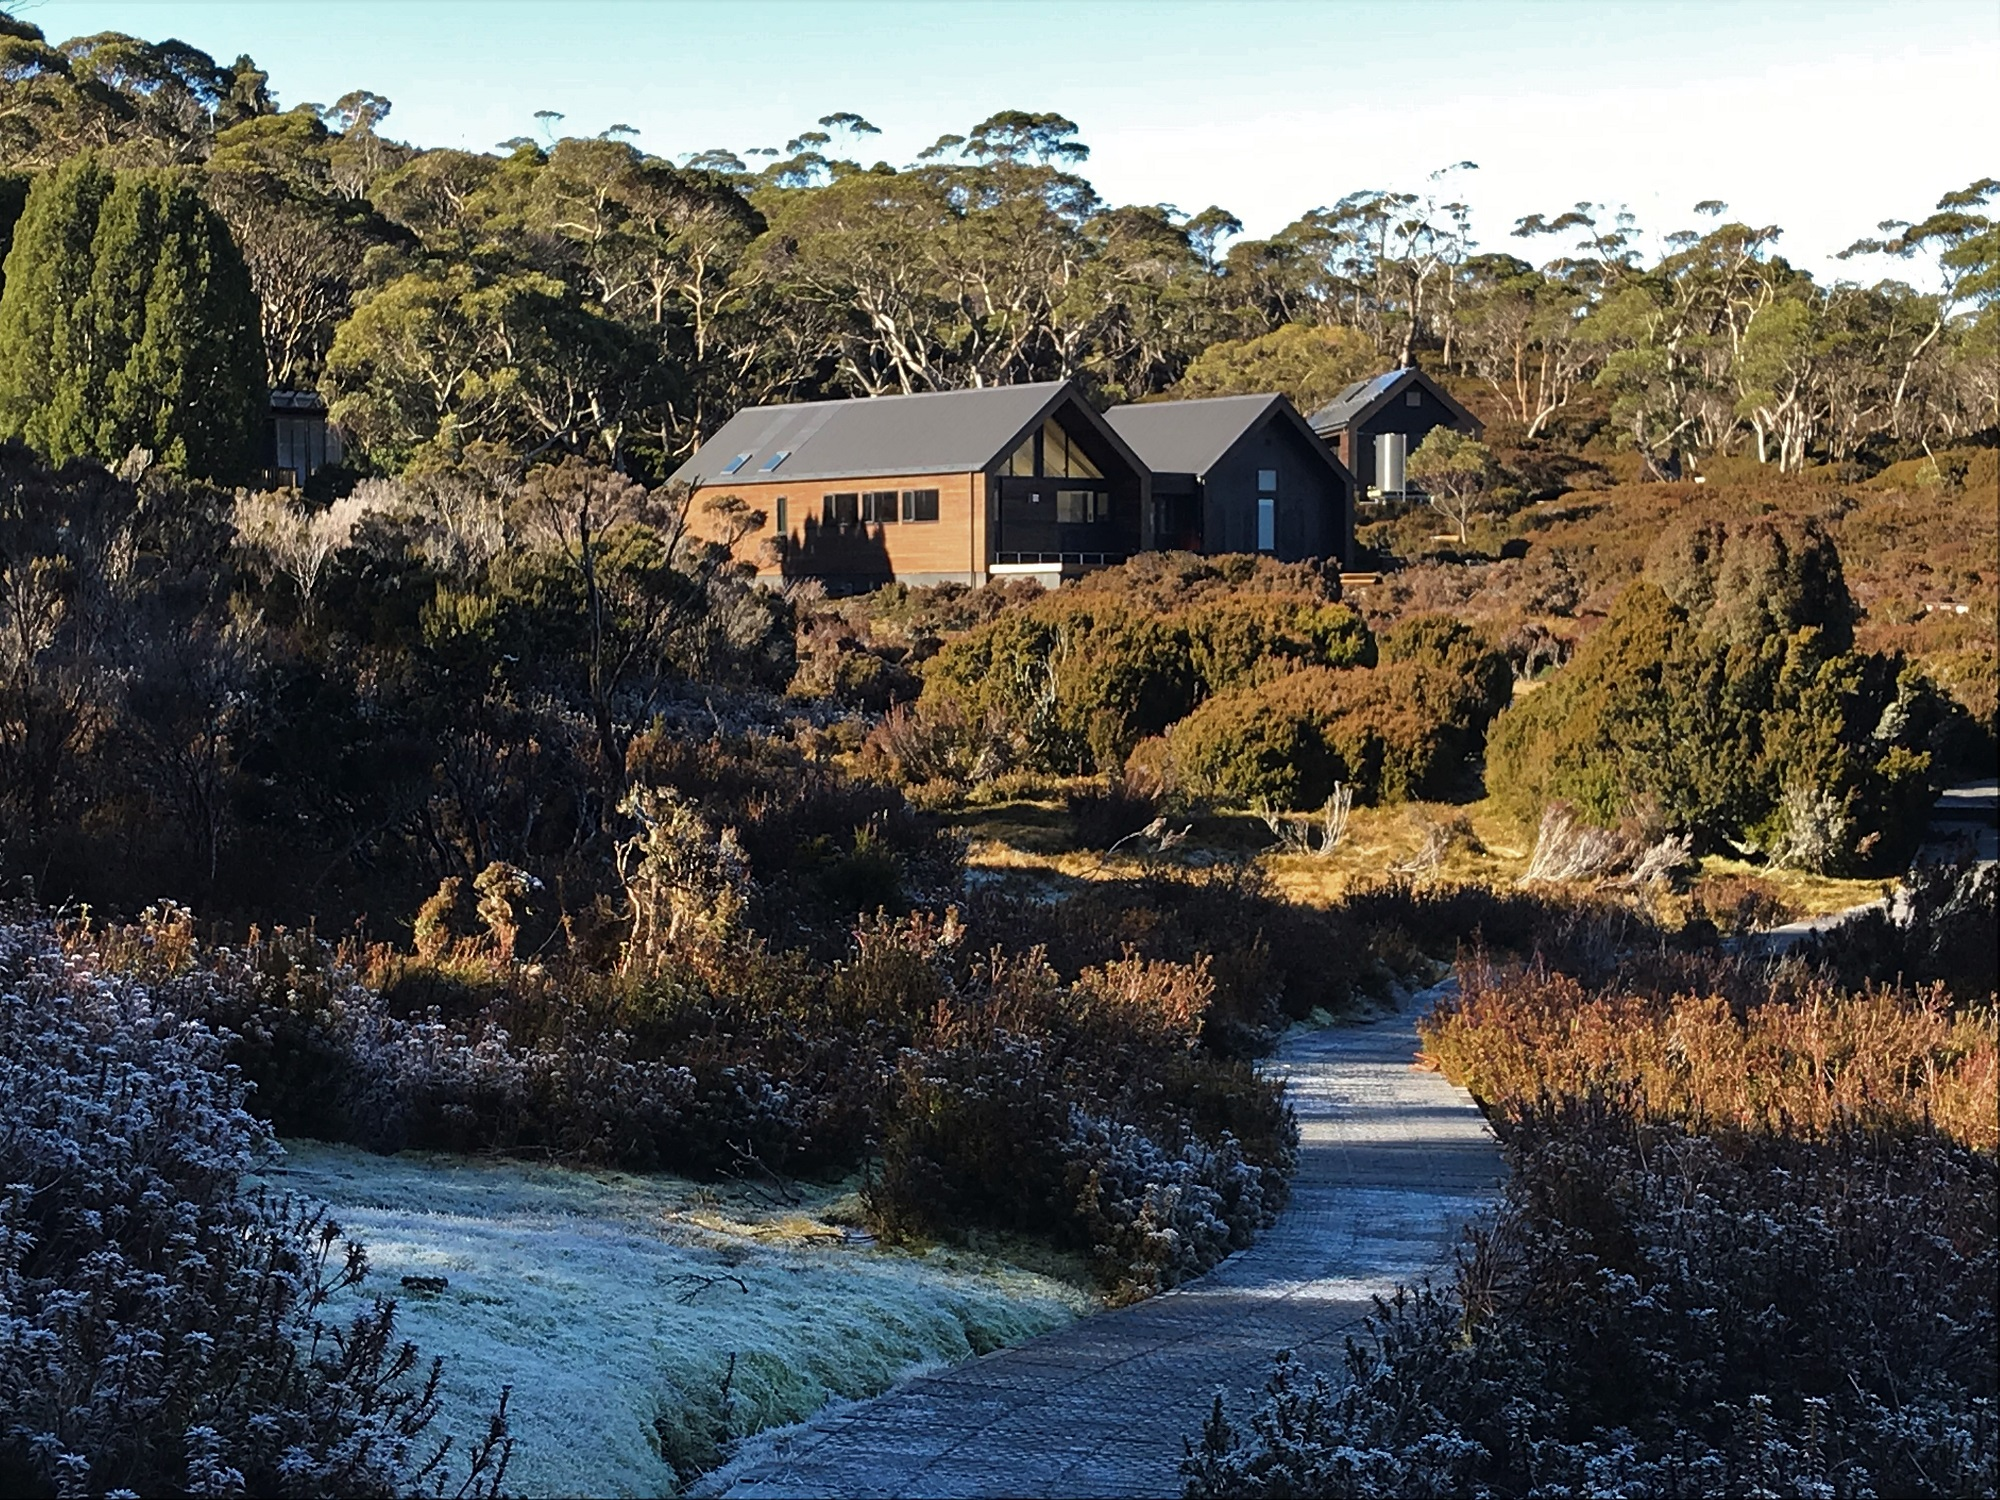 The new Waterfall Valley hut on the Overland Track bathed in sun with snow on the track leading to the hut.